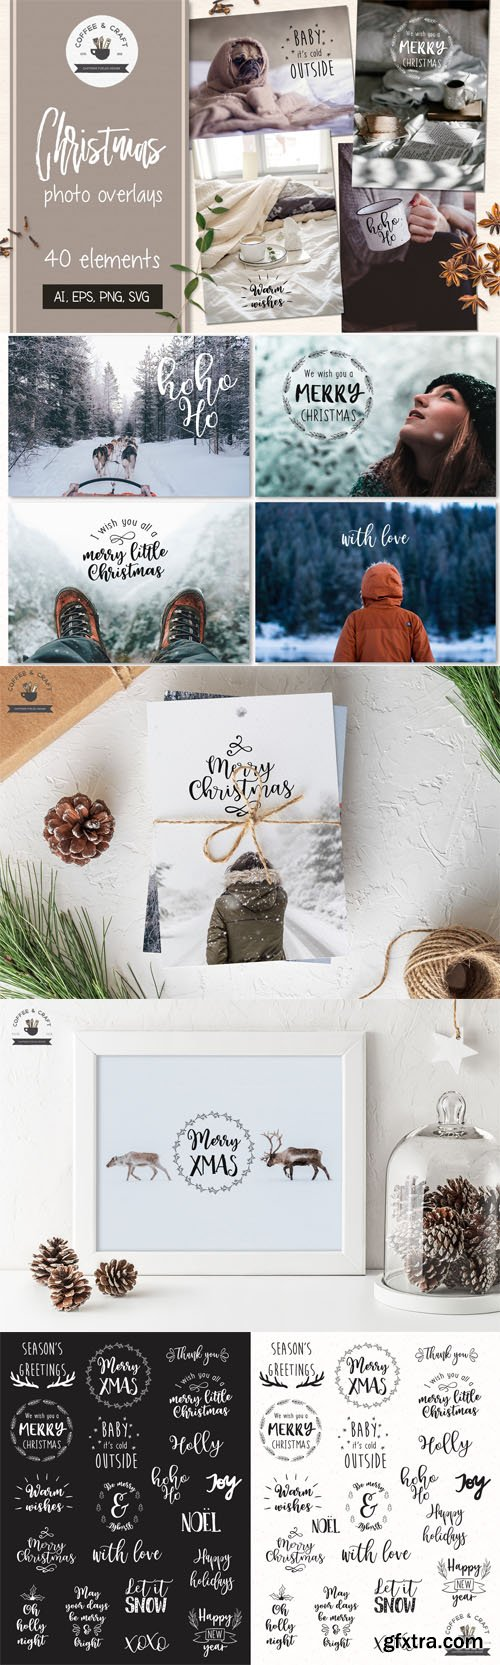 40 Christmas Photo Overlays [Ai/EPS/PNG/SVG]